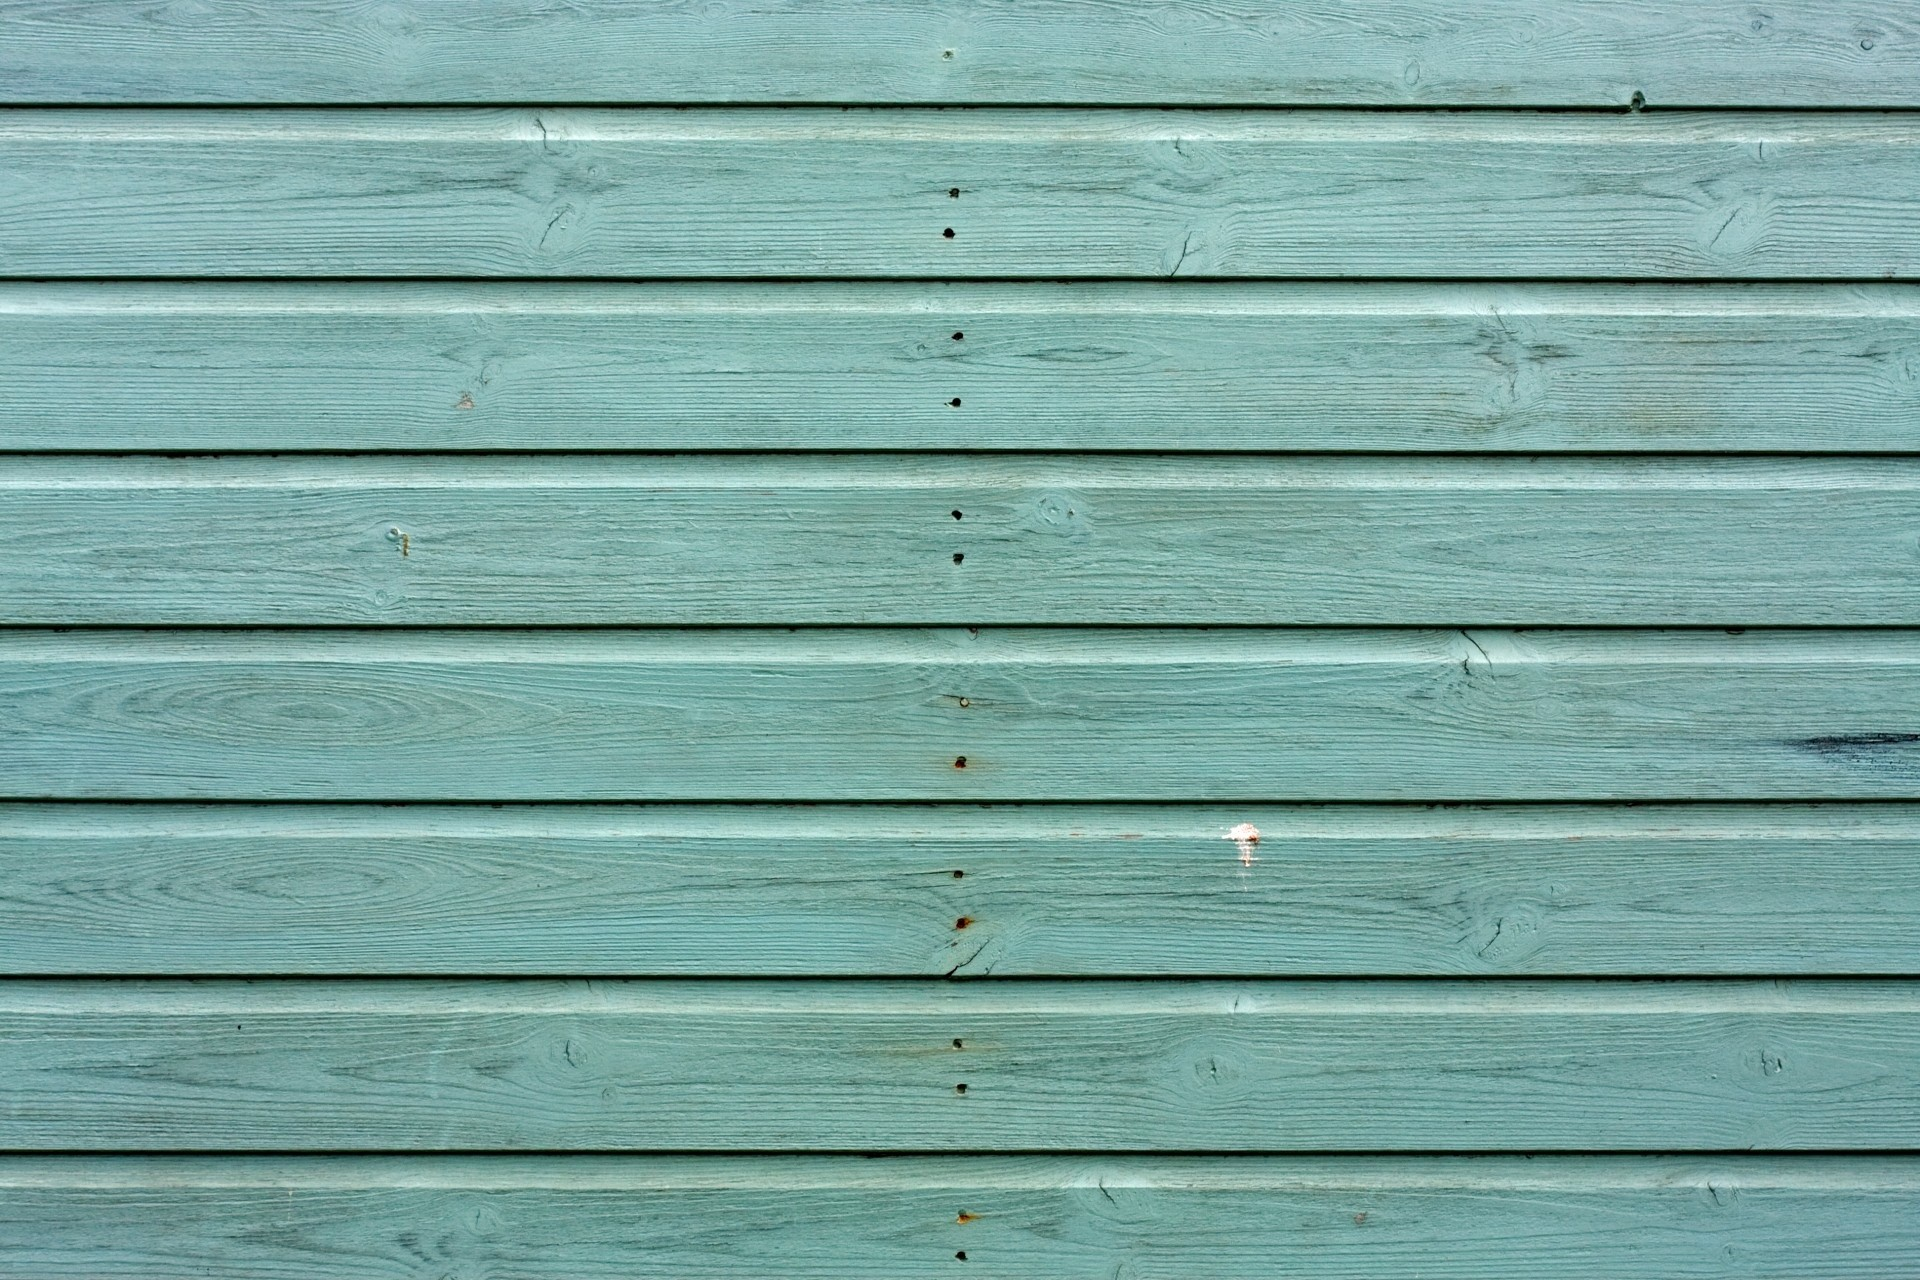 wood grain texture plank floor old wall pattern line green blue material  surface background hardwood planks